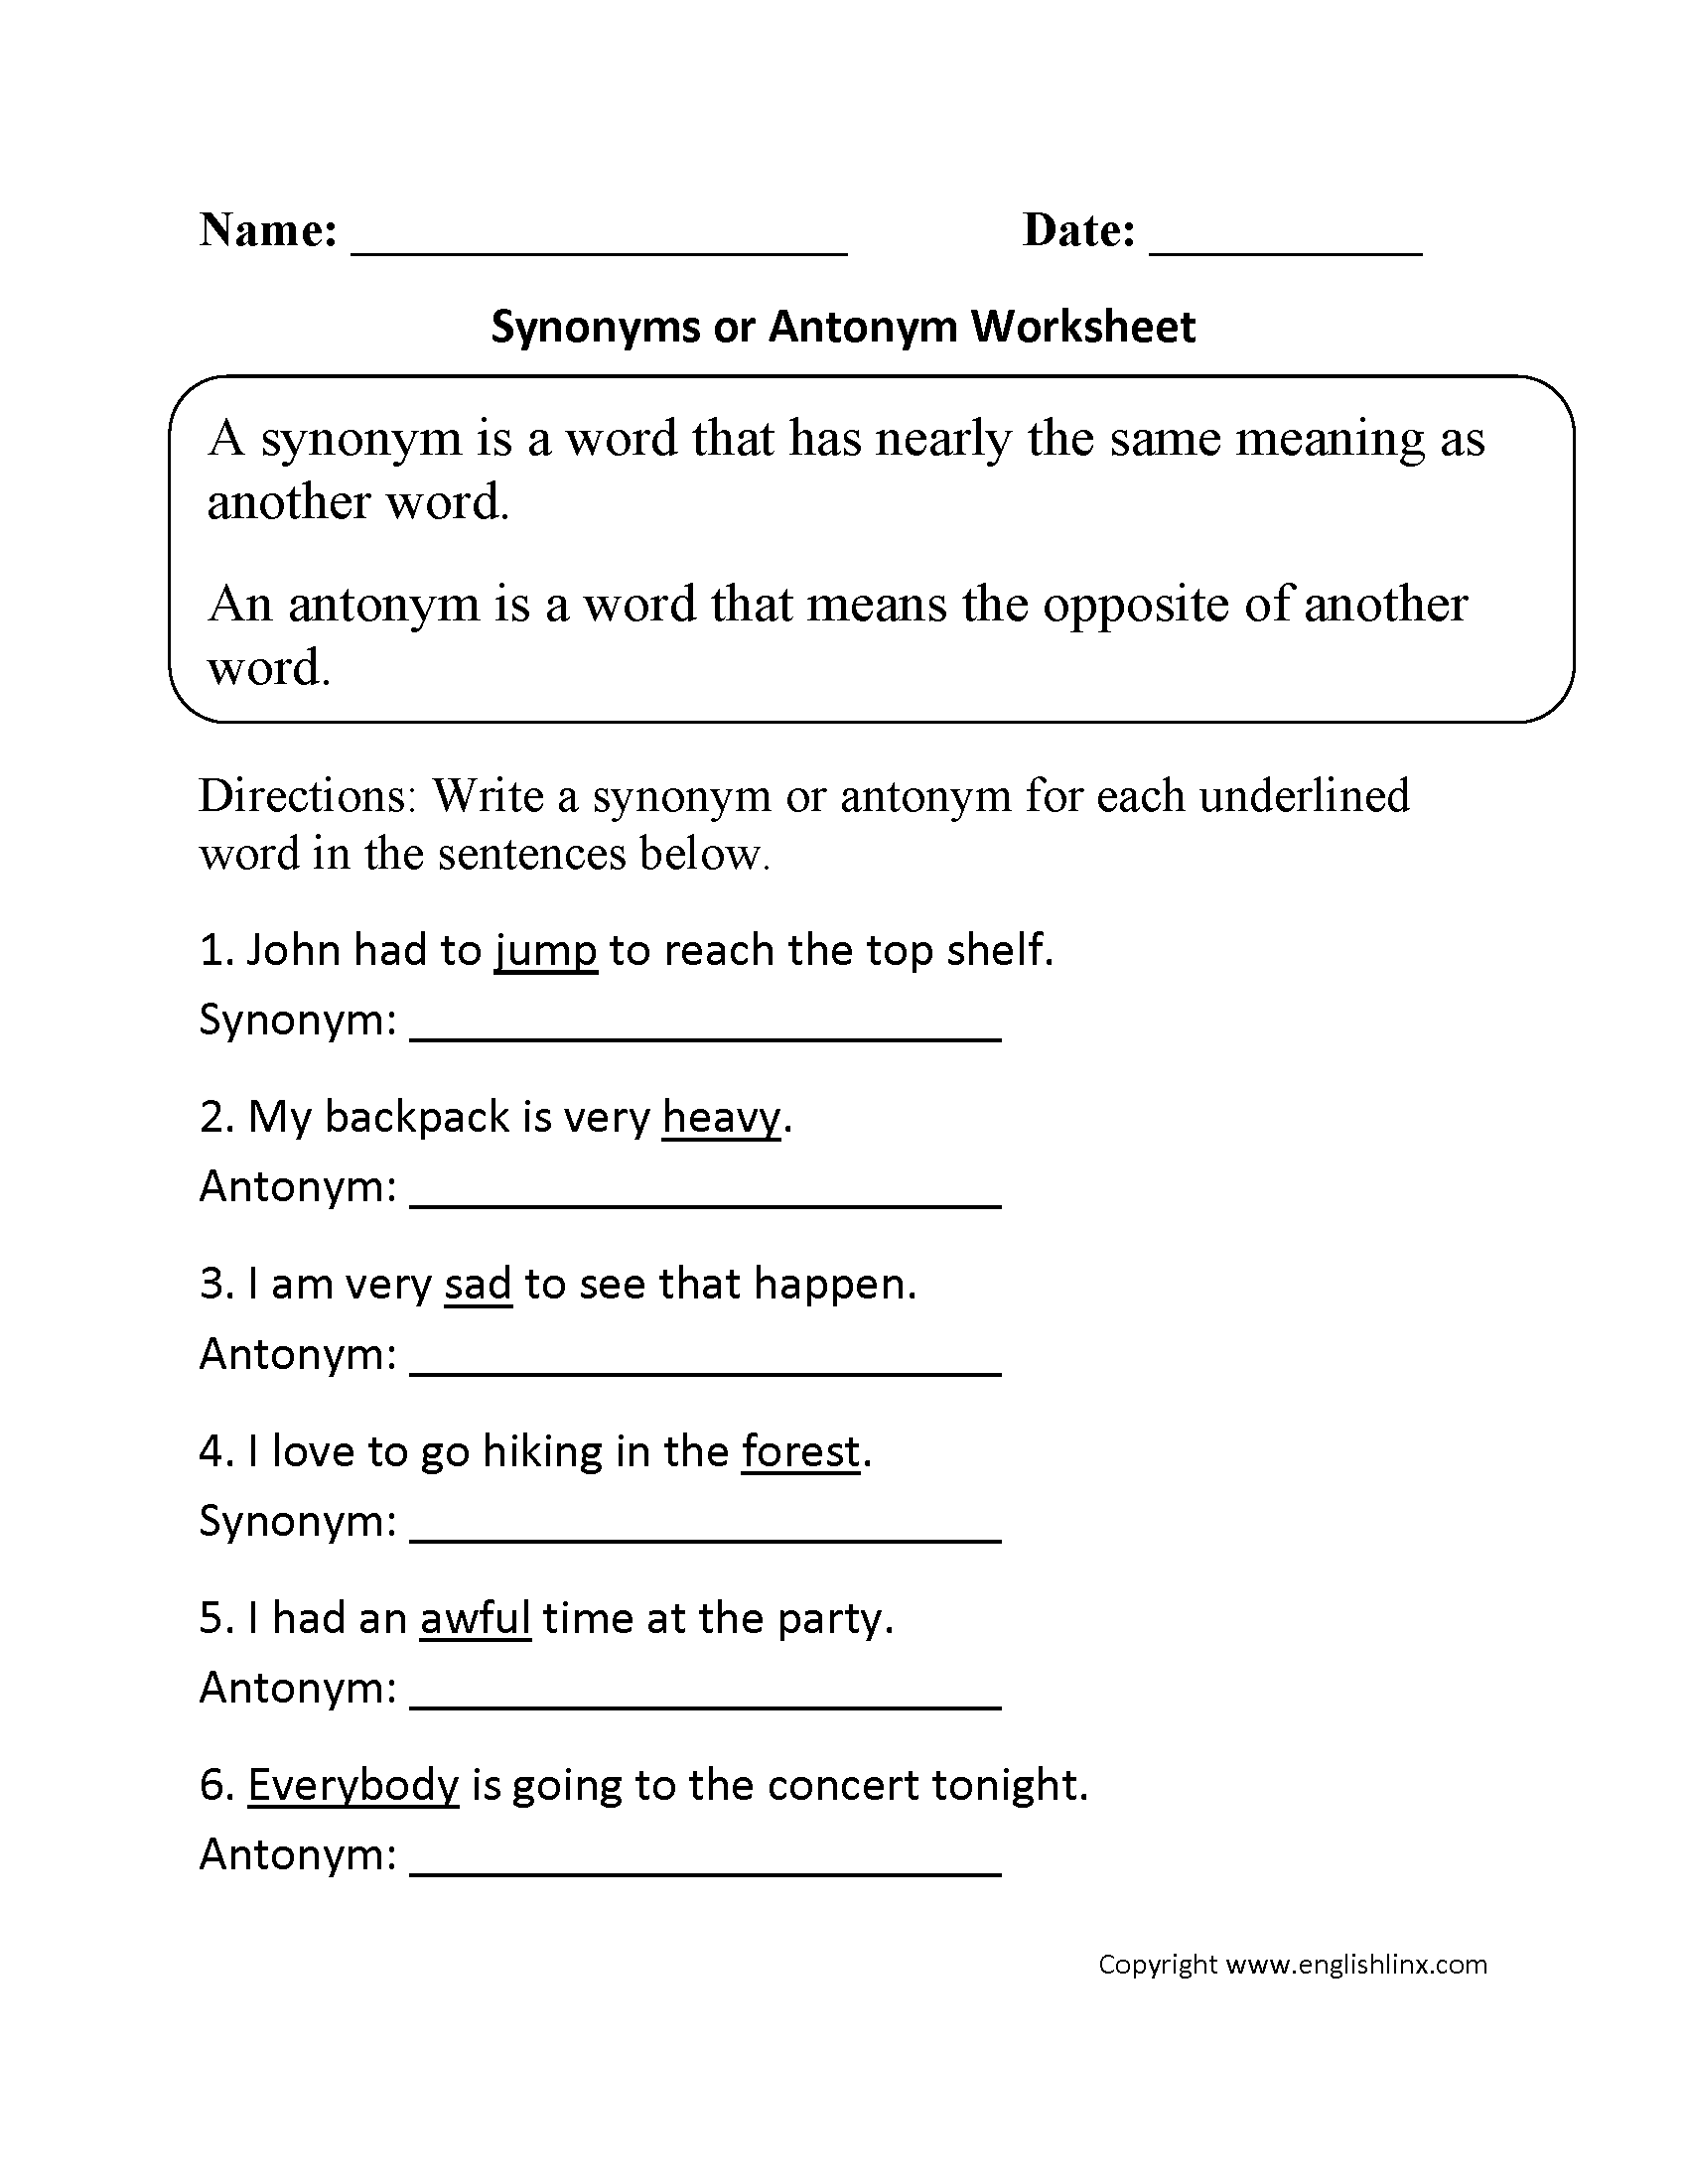 Worksheet Synonyms And Antonyms vocabulary worksheets synonym and antonym or worksheet